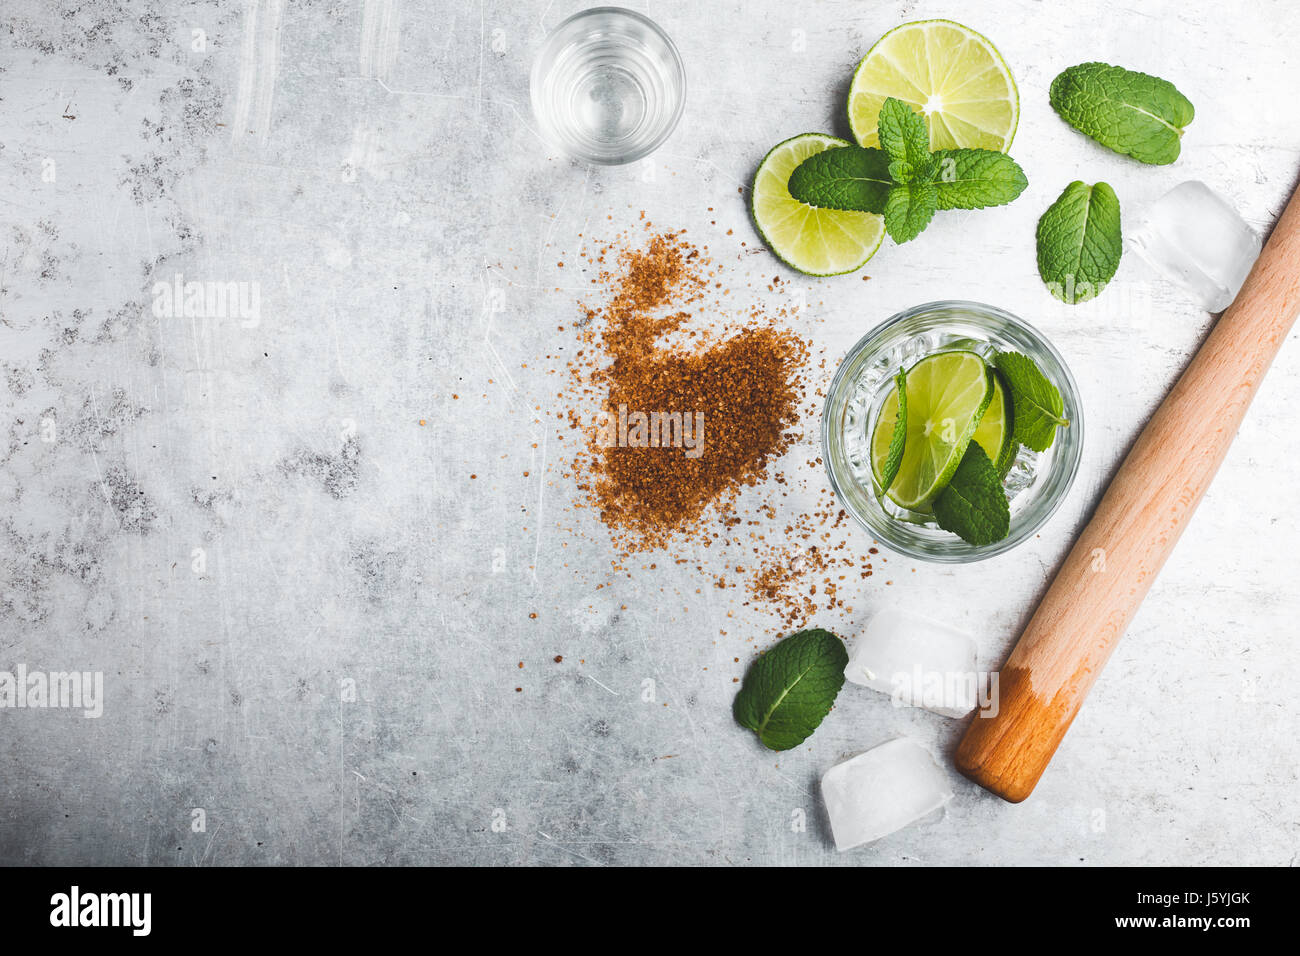 Mojito cocktail ingredients on light gray background. Lime slices, brown sugar, wooden squeezer, rum and mint leaves - Stock Image